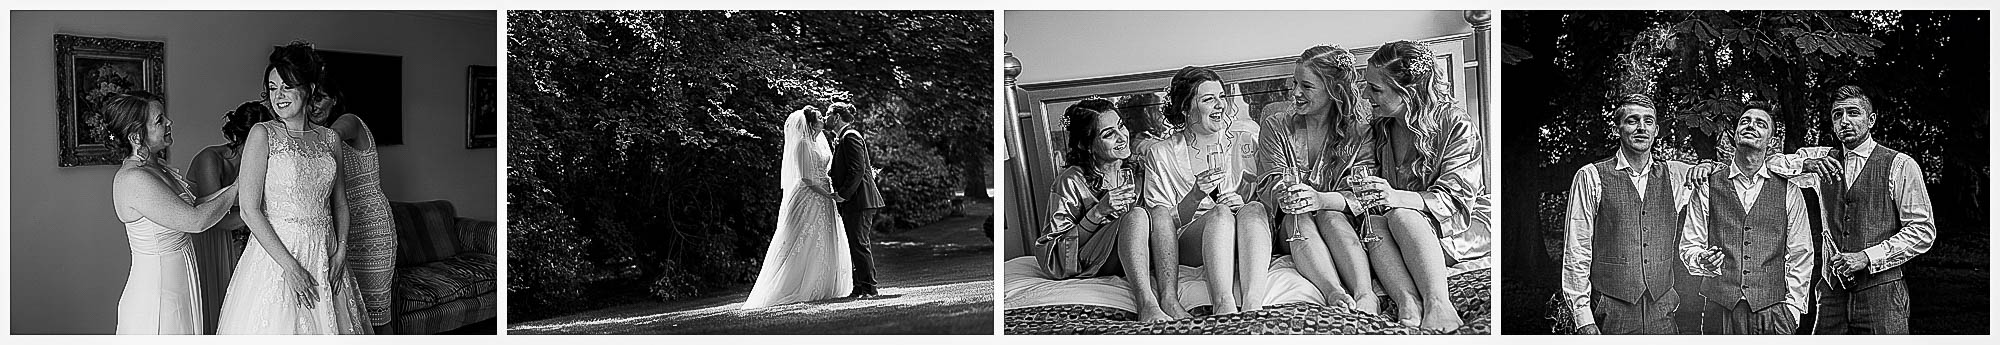 Wedding Photographer Pontefract